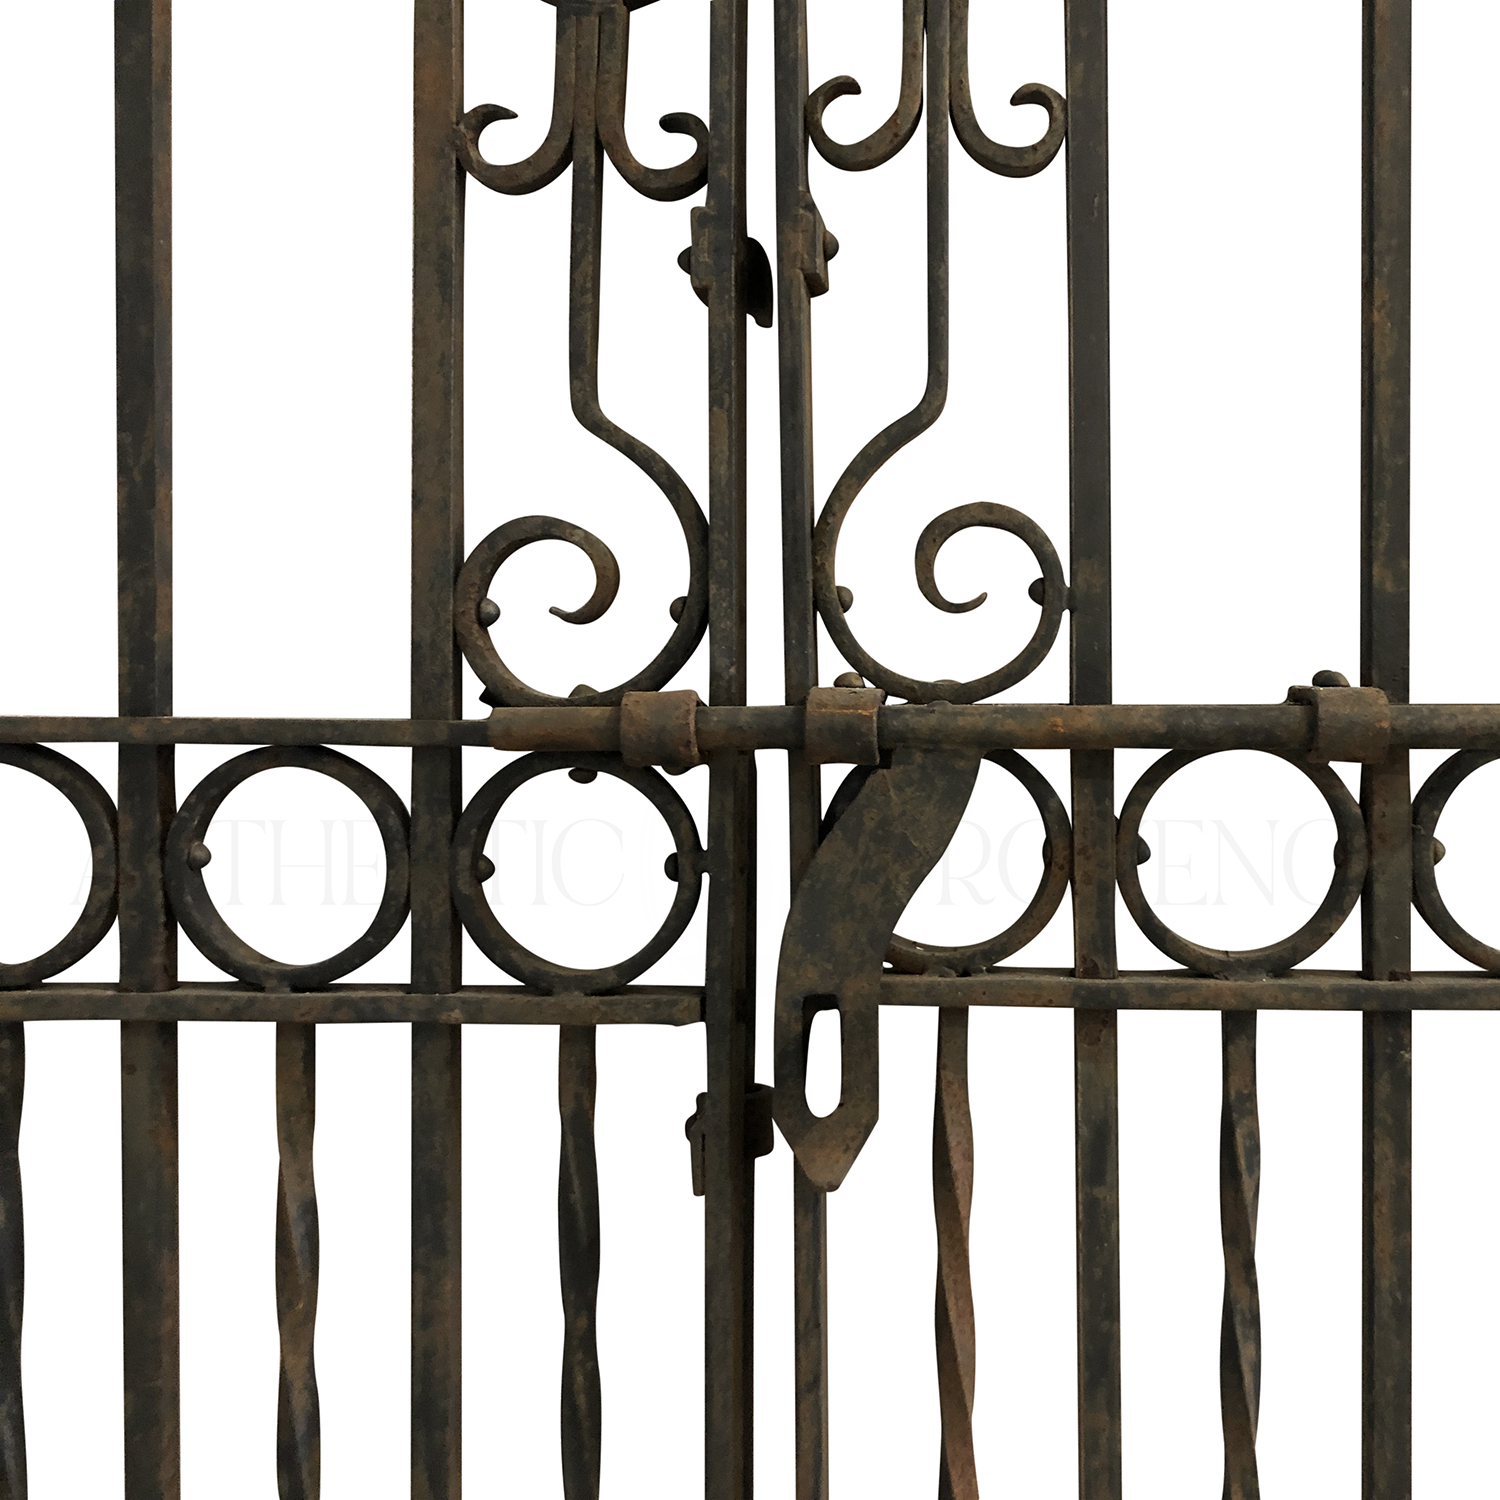 Close up of a heavy double sided wrought iron entrance gate from the early 19th century